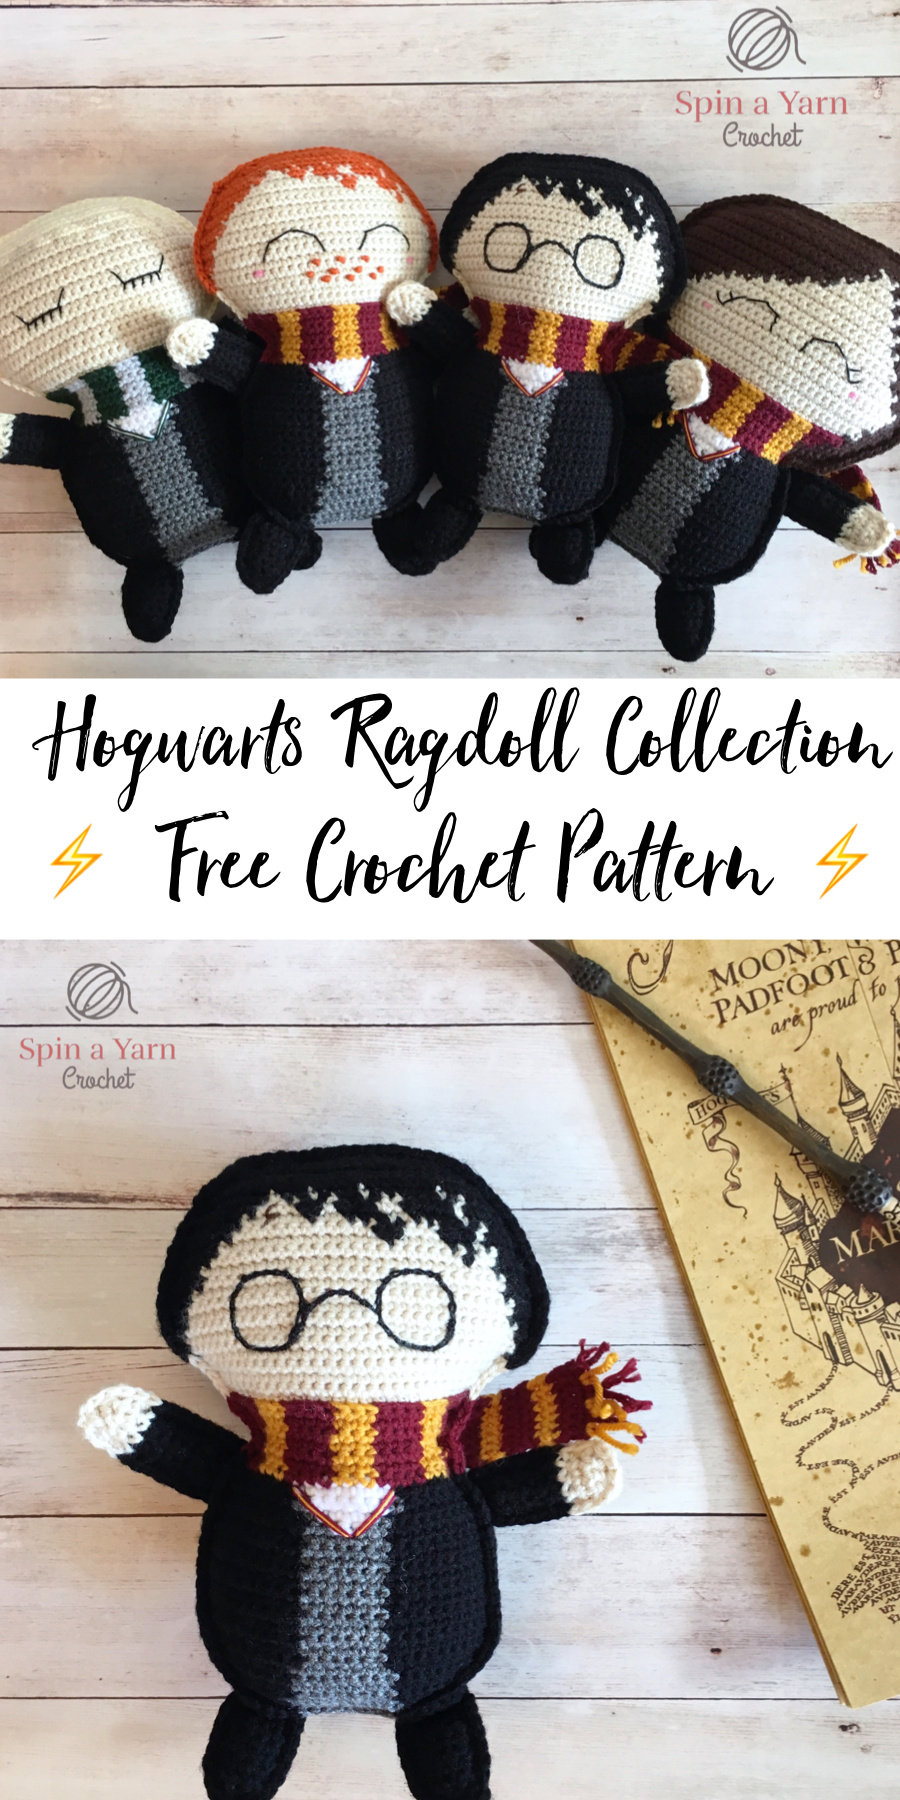 16 Magical Harry Potter Patterns for... | Top Crochet Patterns | 1800x900